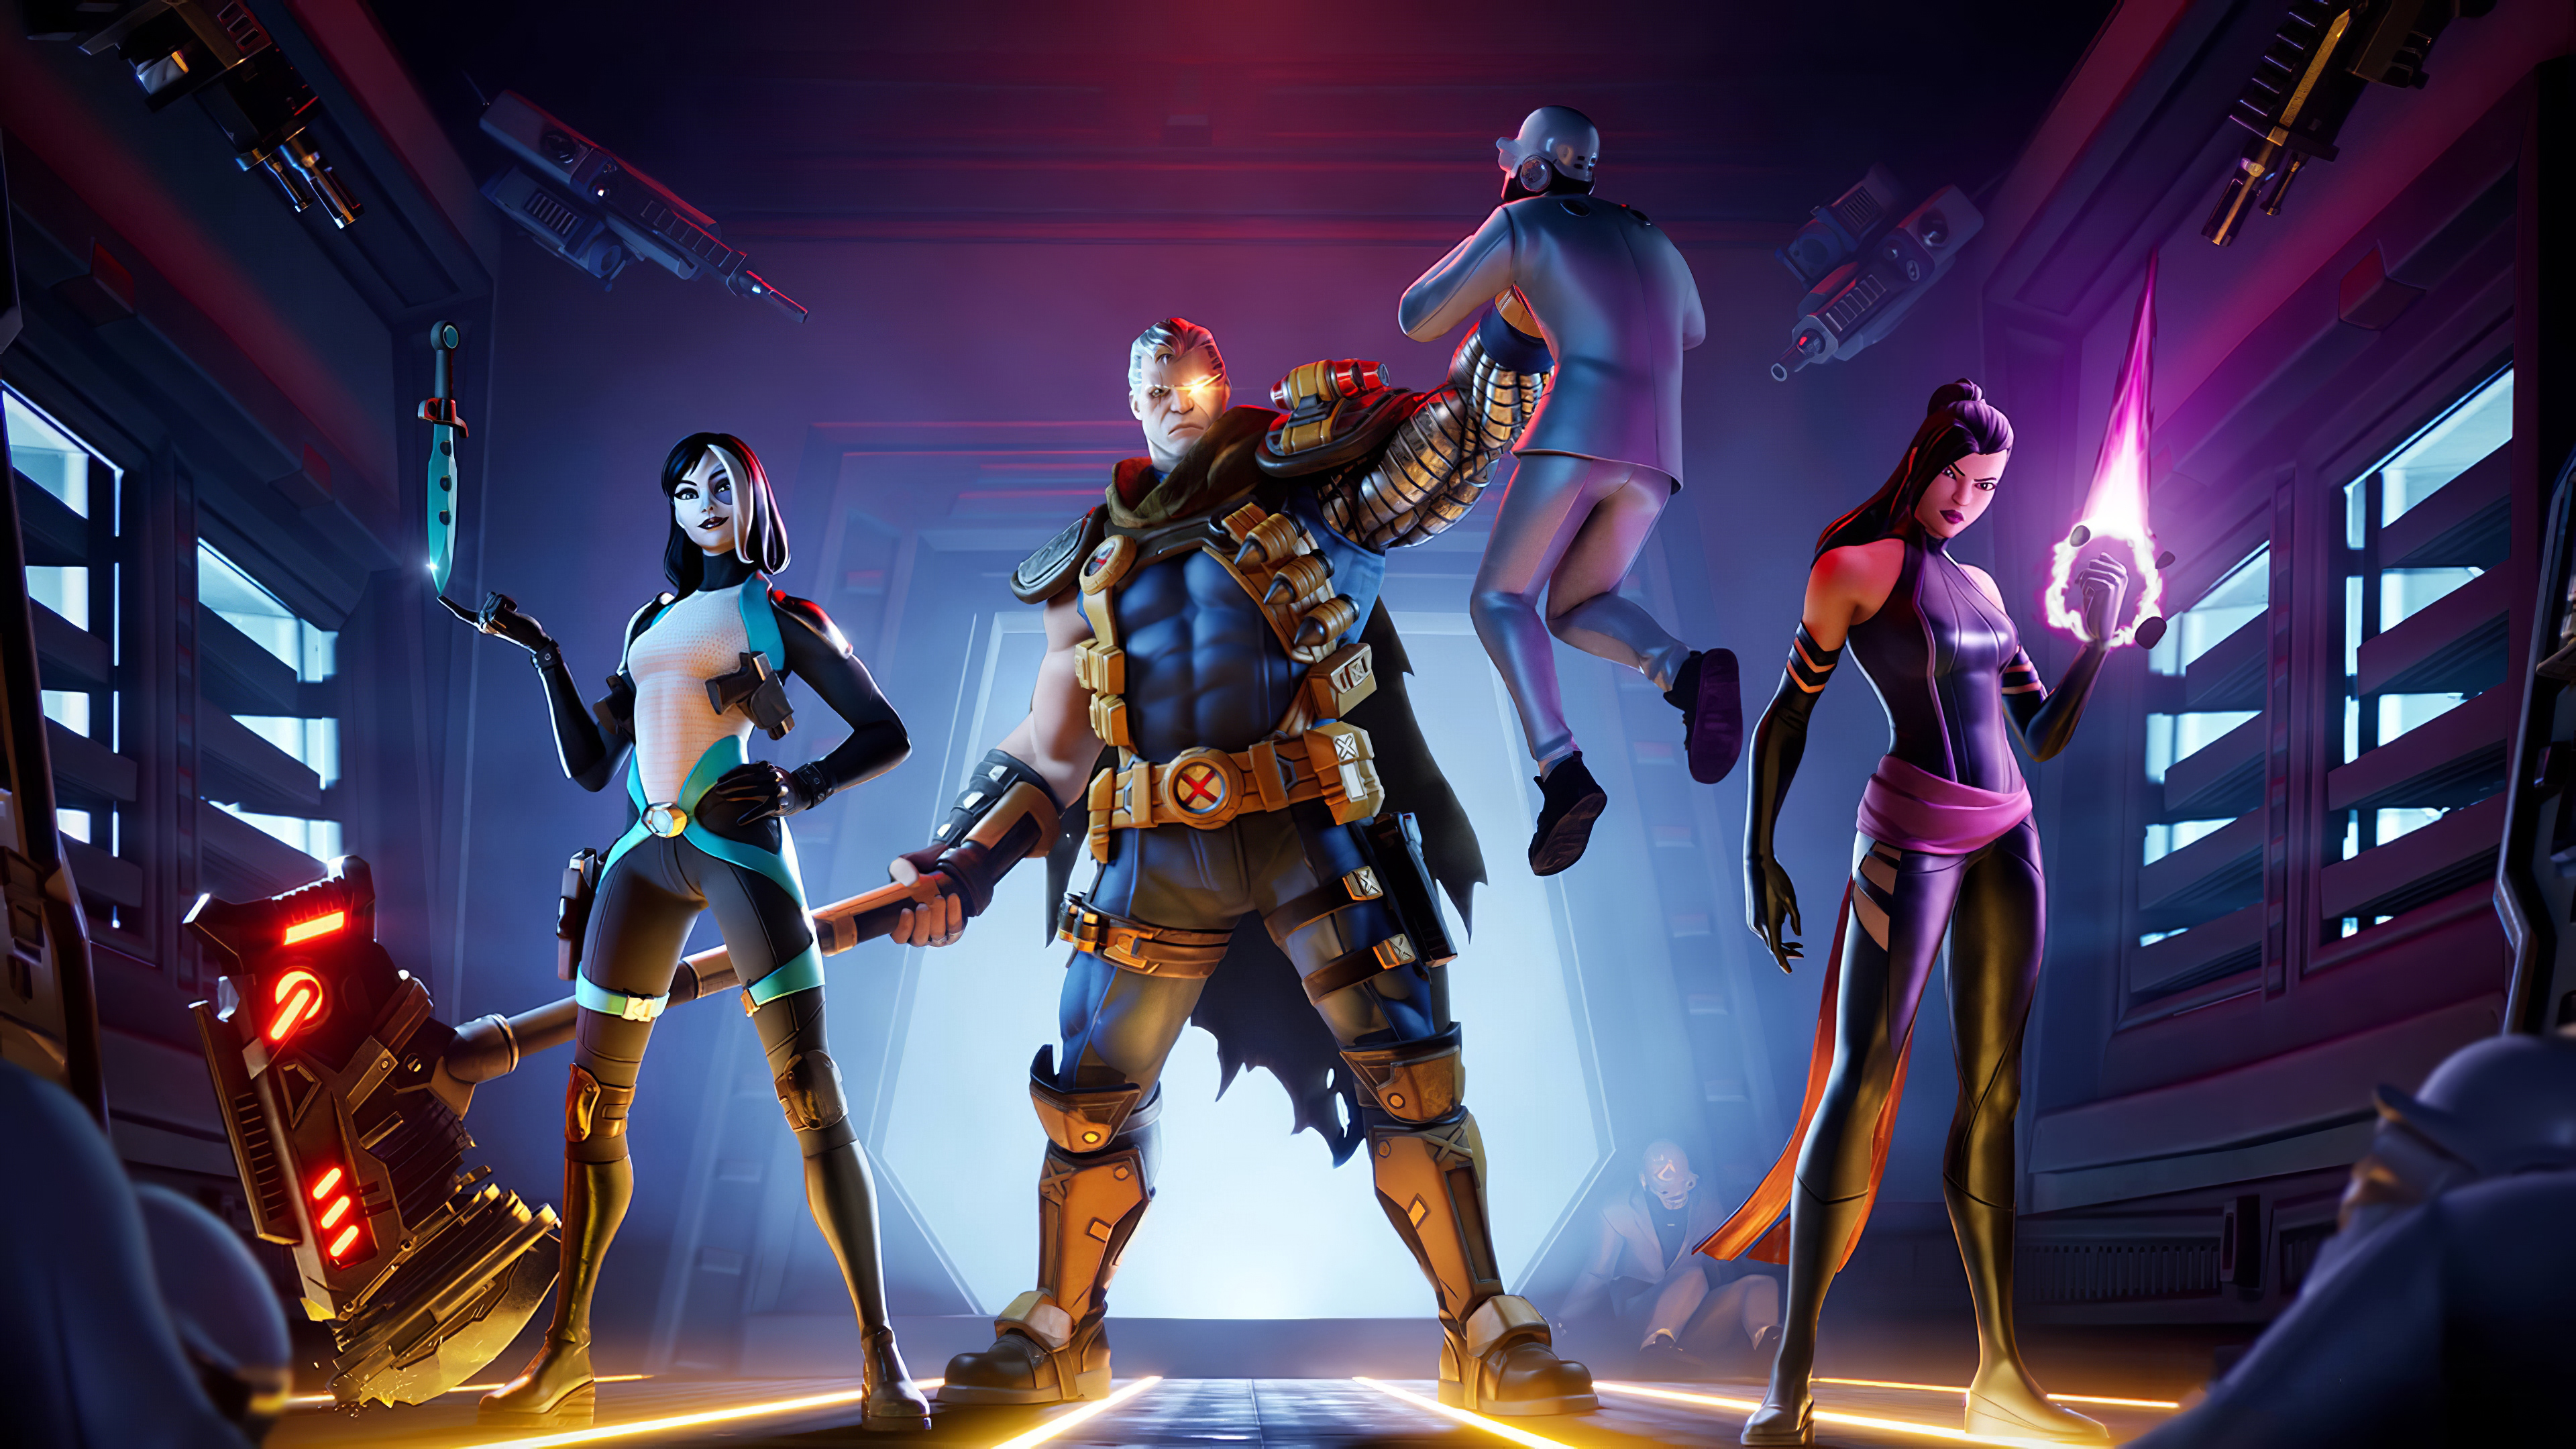 Fortnite 4k Ultra Hd Wallpaper Background Image 3840x2160 Id 1075357 Wallpaper Abyss